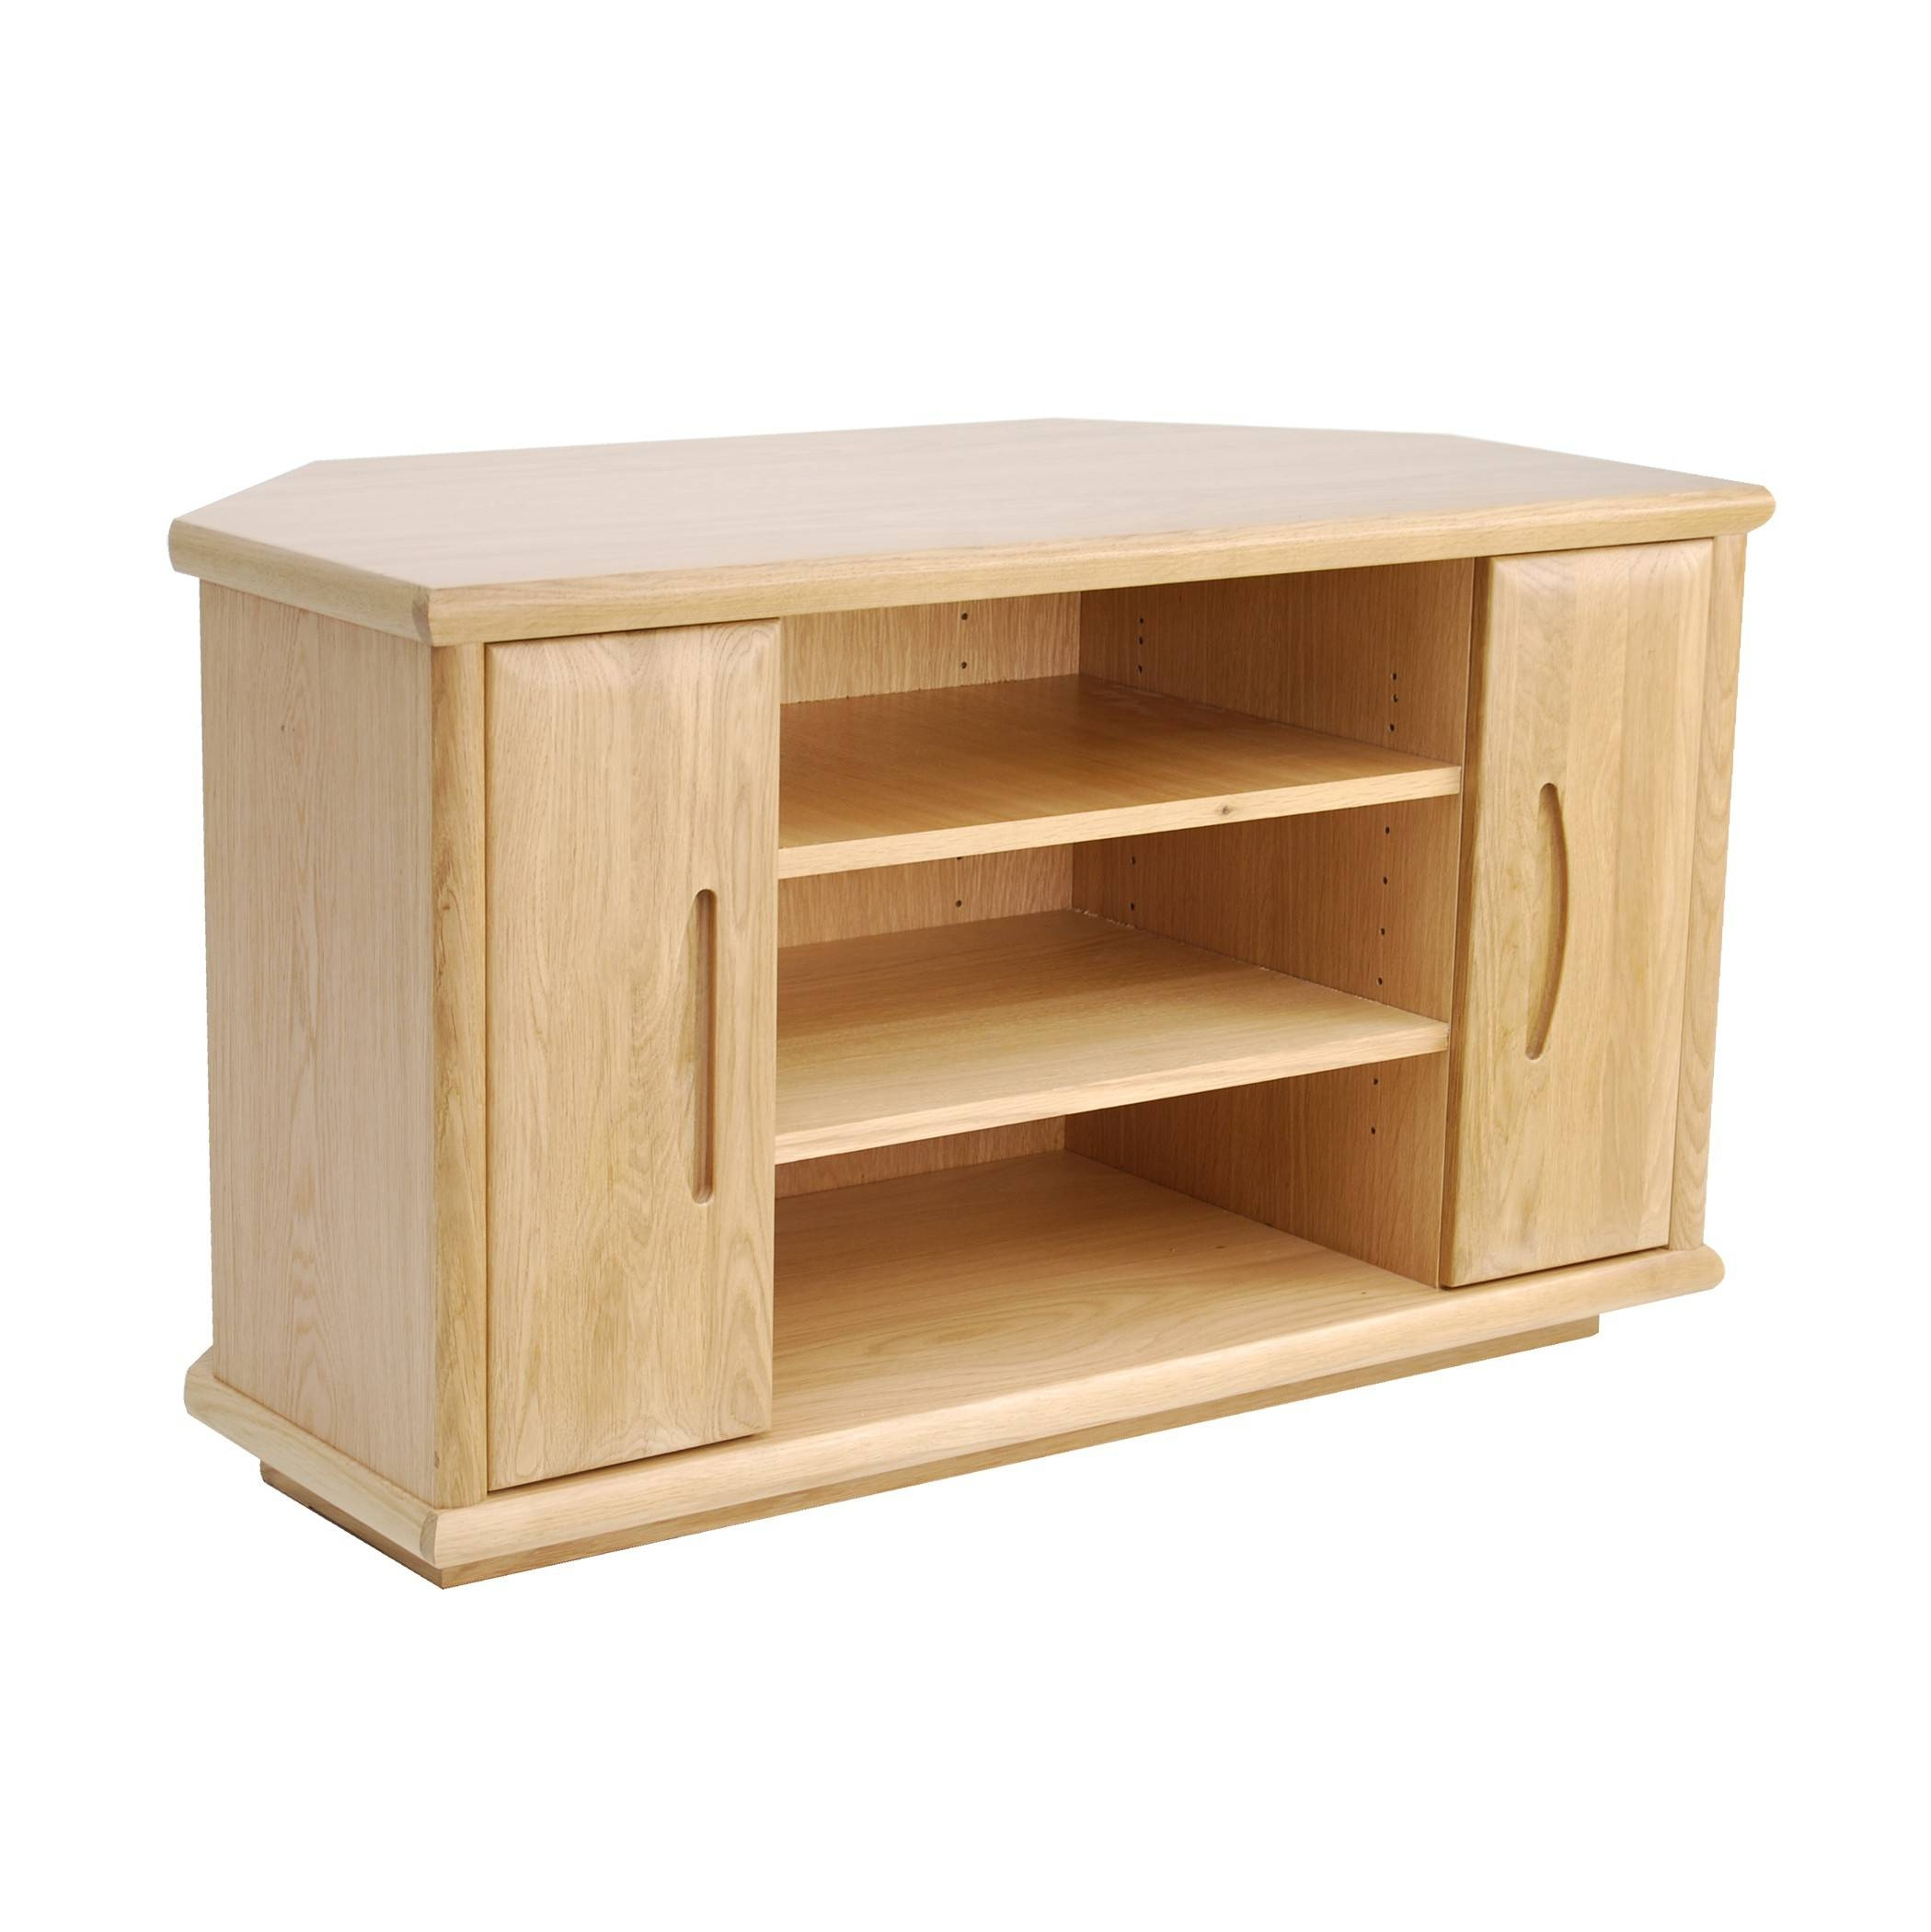 Fresh Wonderful Oak Corner Tv Stand Argos #24079 with Oak Effect Corner Tv Stand (Image 3 of 15)